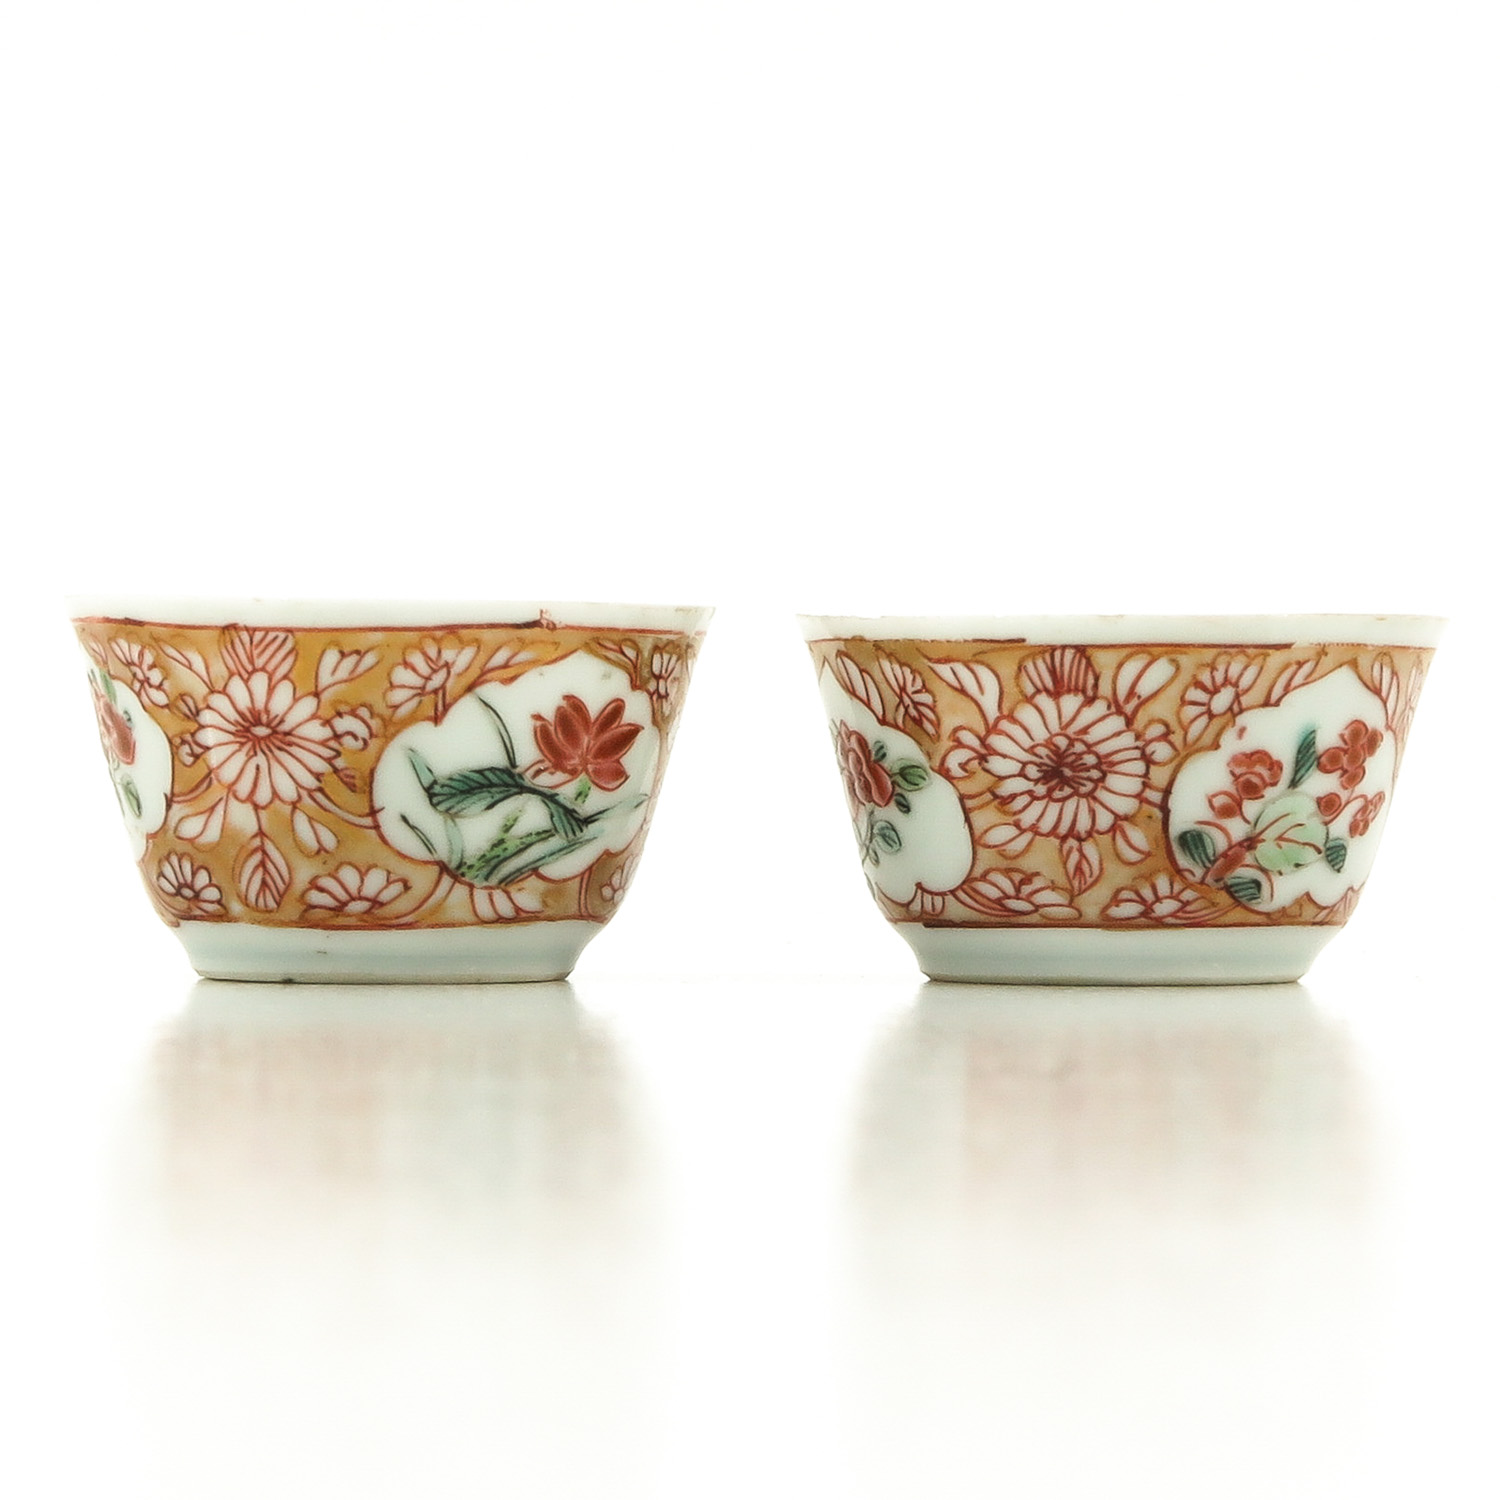 A Set of 2 Cups and Saucers - Image 2 of 10